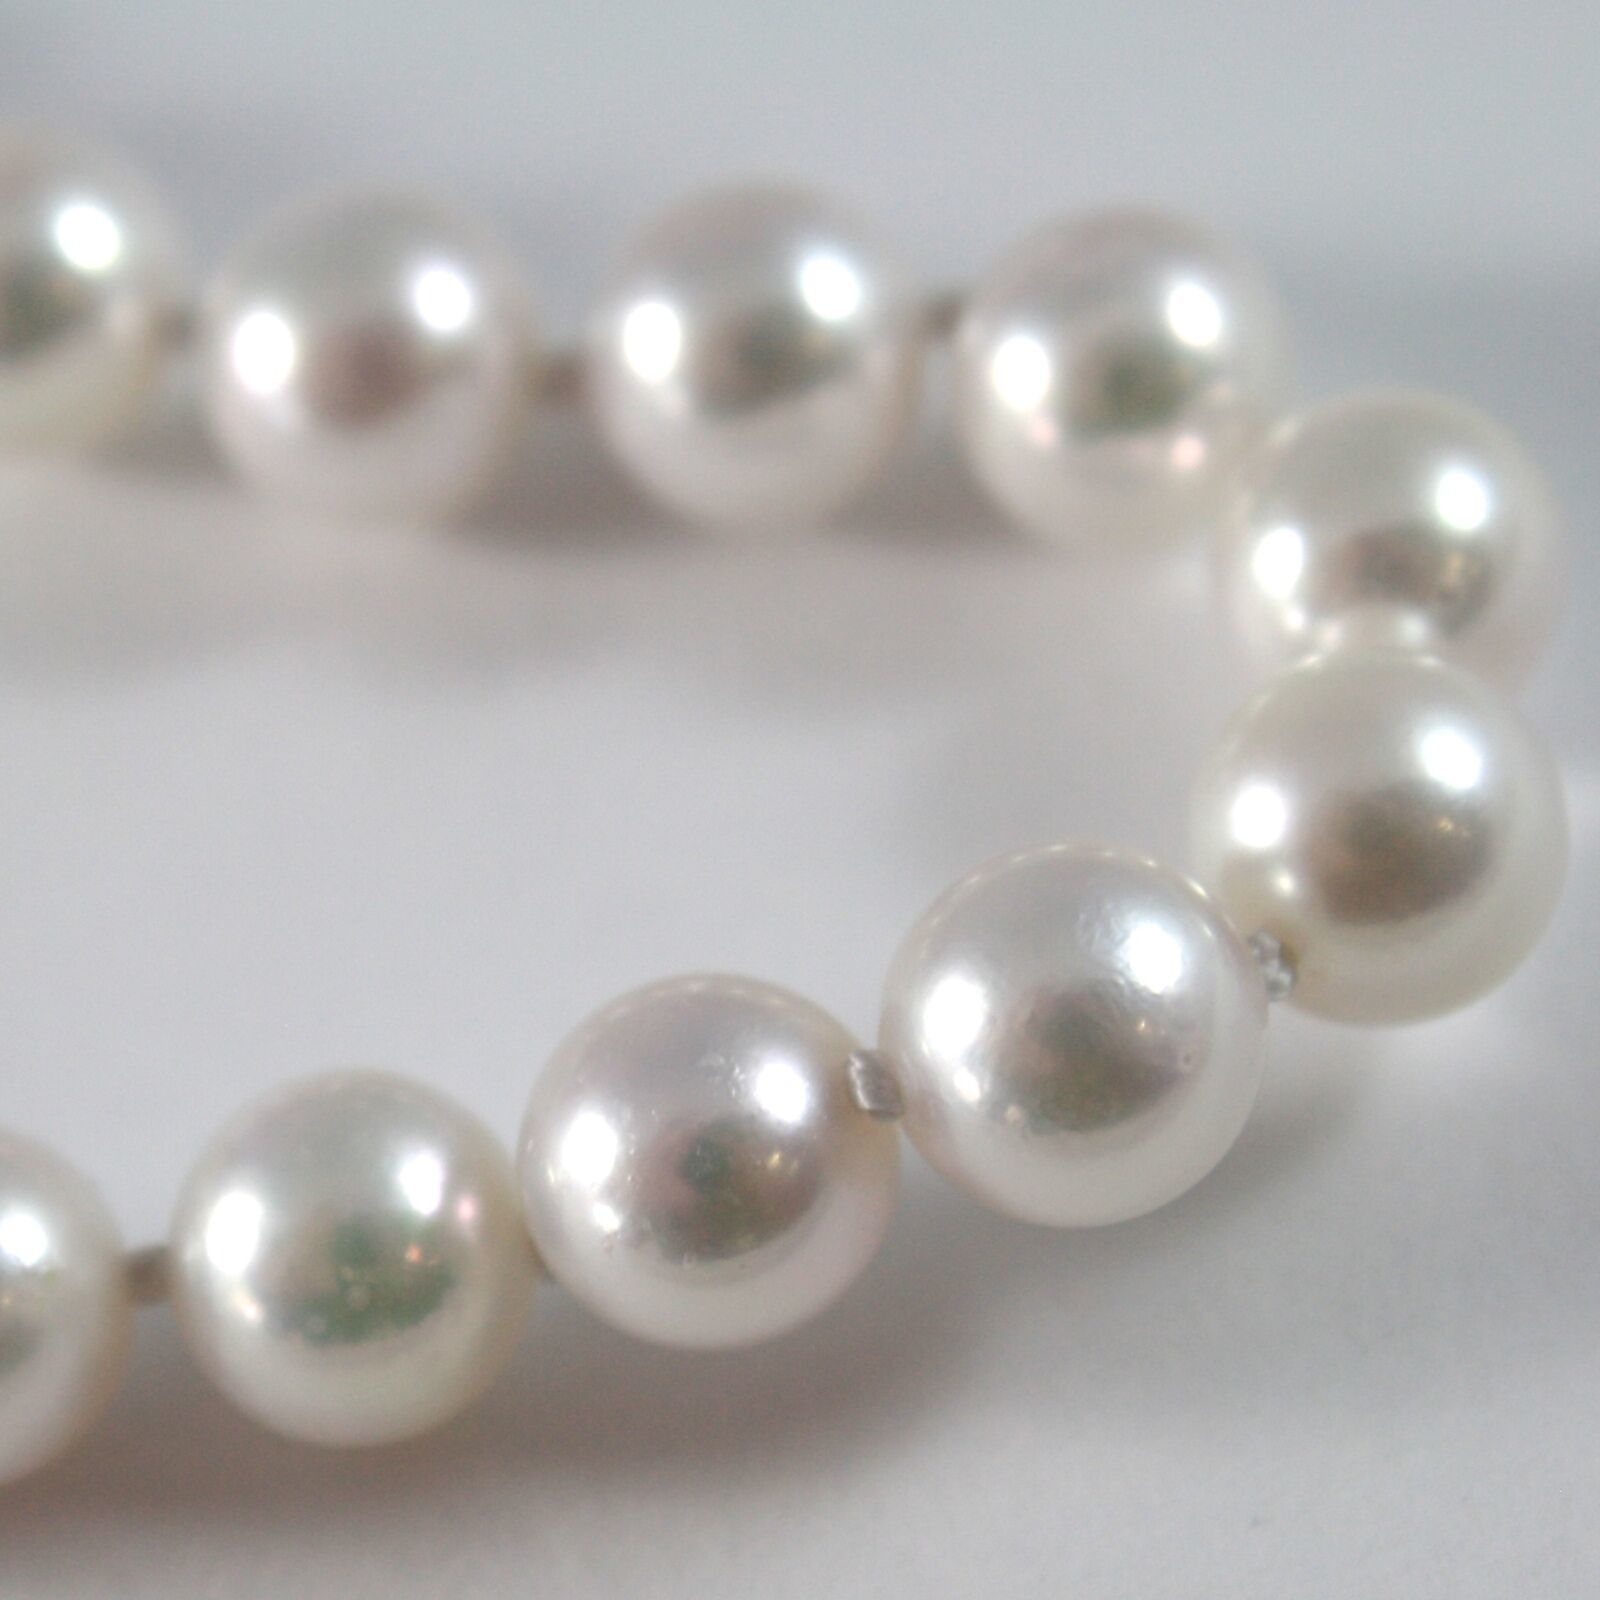 BRACELET OR BLANC 750 18K, FIL PERLES BLANCHES AKOYA DIAM 8 MM, LONG 19 CM